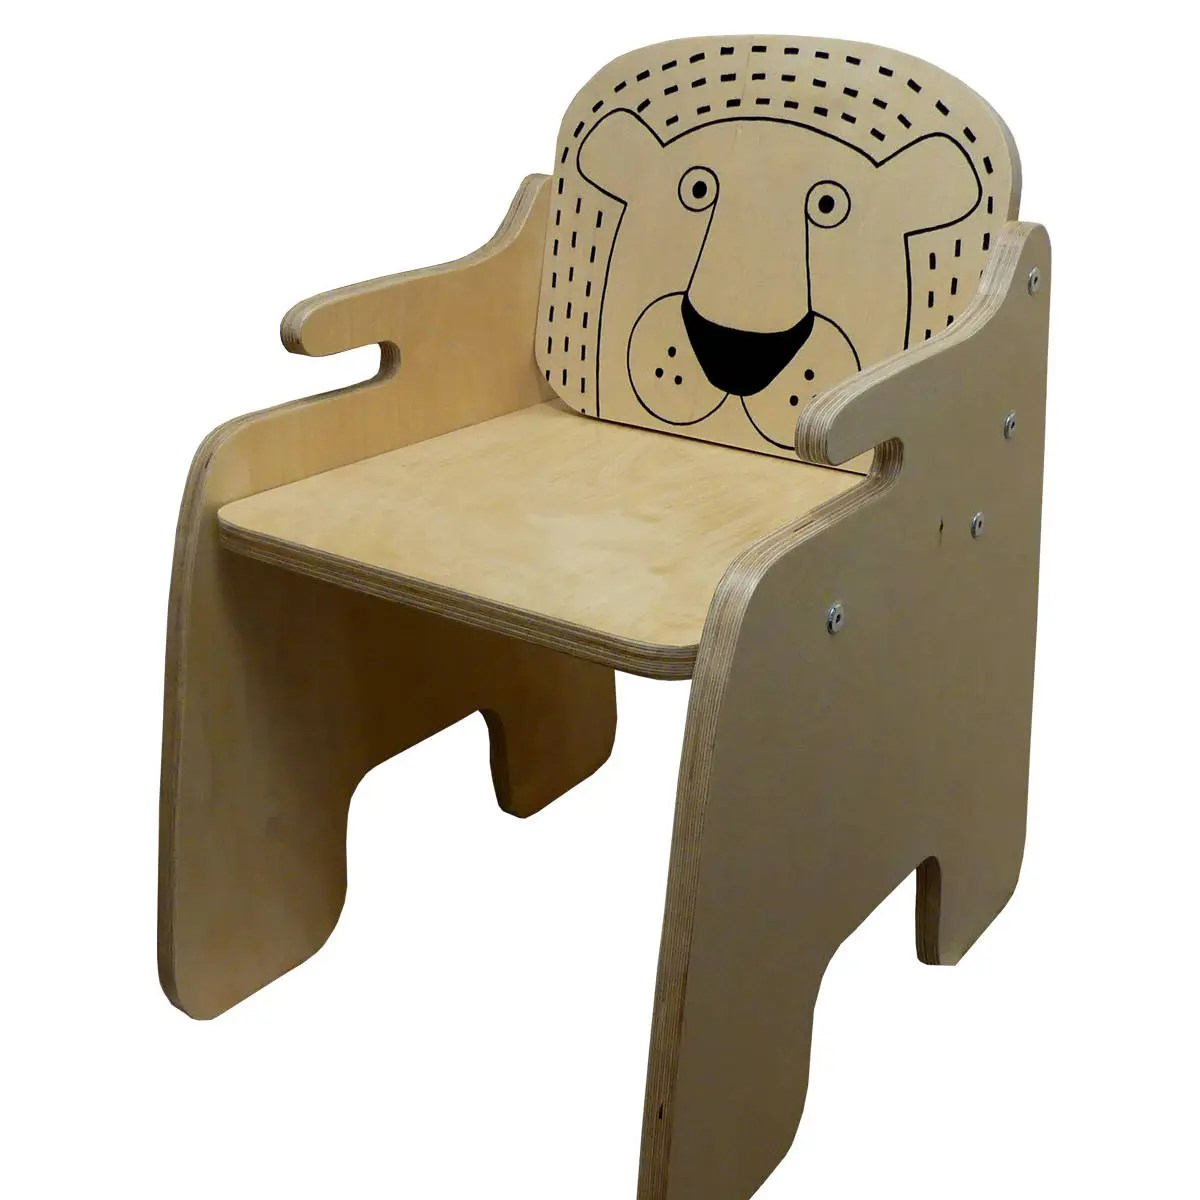 Toddler Wooden Chair Lion Chair Quirky Kids Wooden Chair Toddler Chair Safari Nursery Jungle Kids Room Animal Chair Kids Furniture Child Seat Handmade